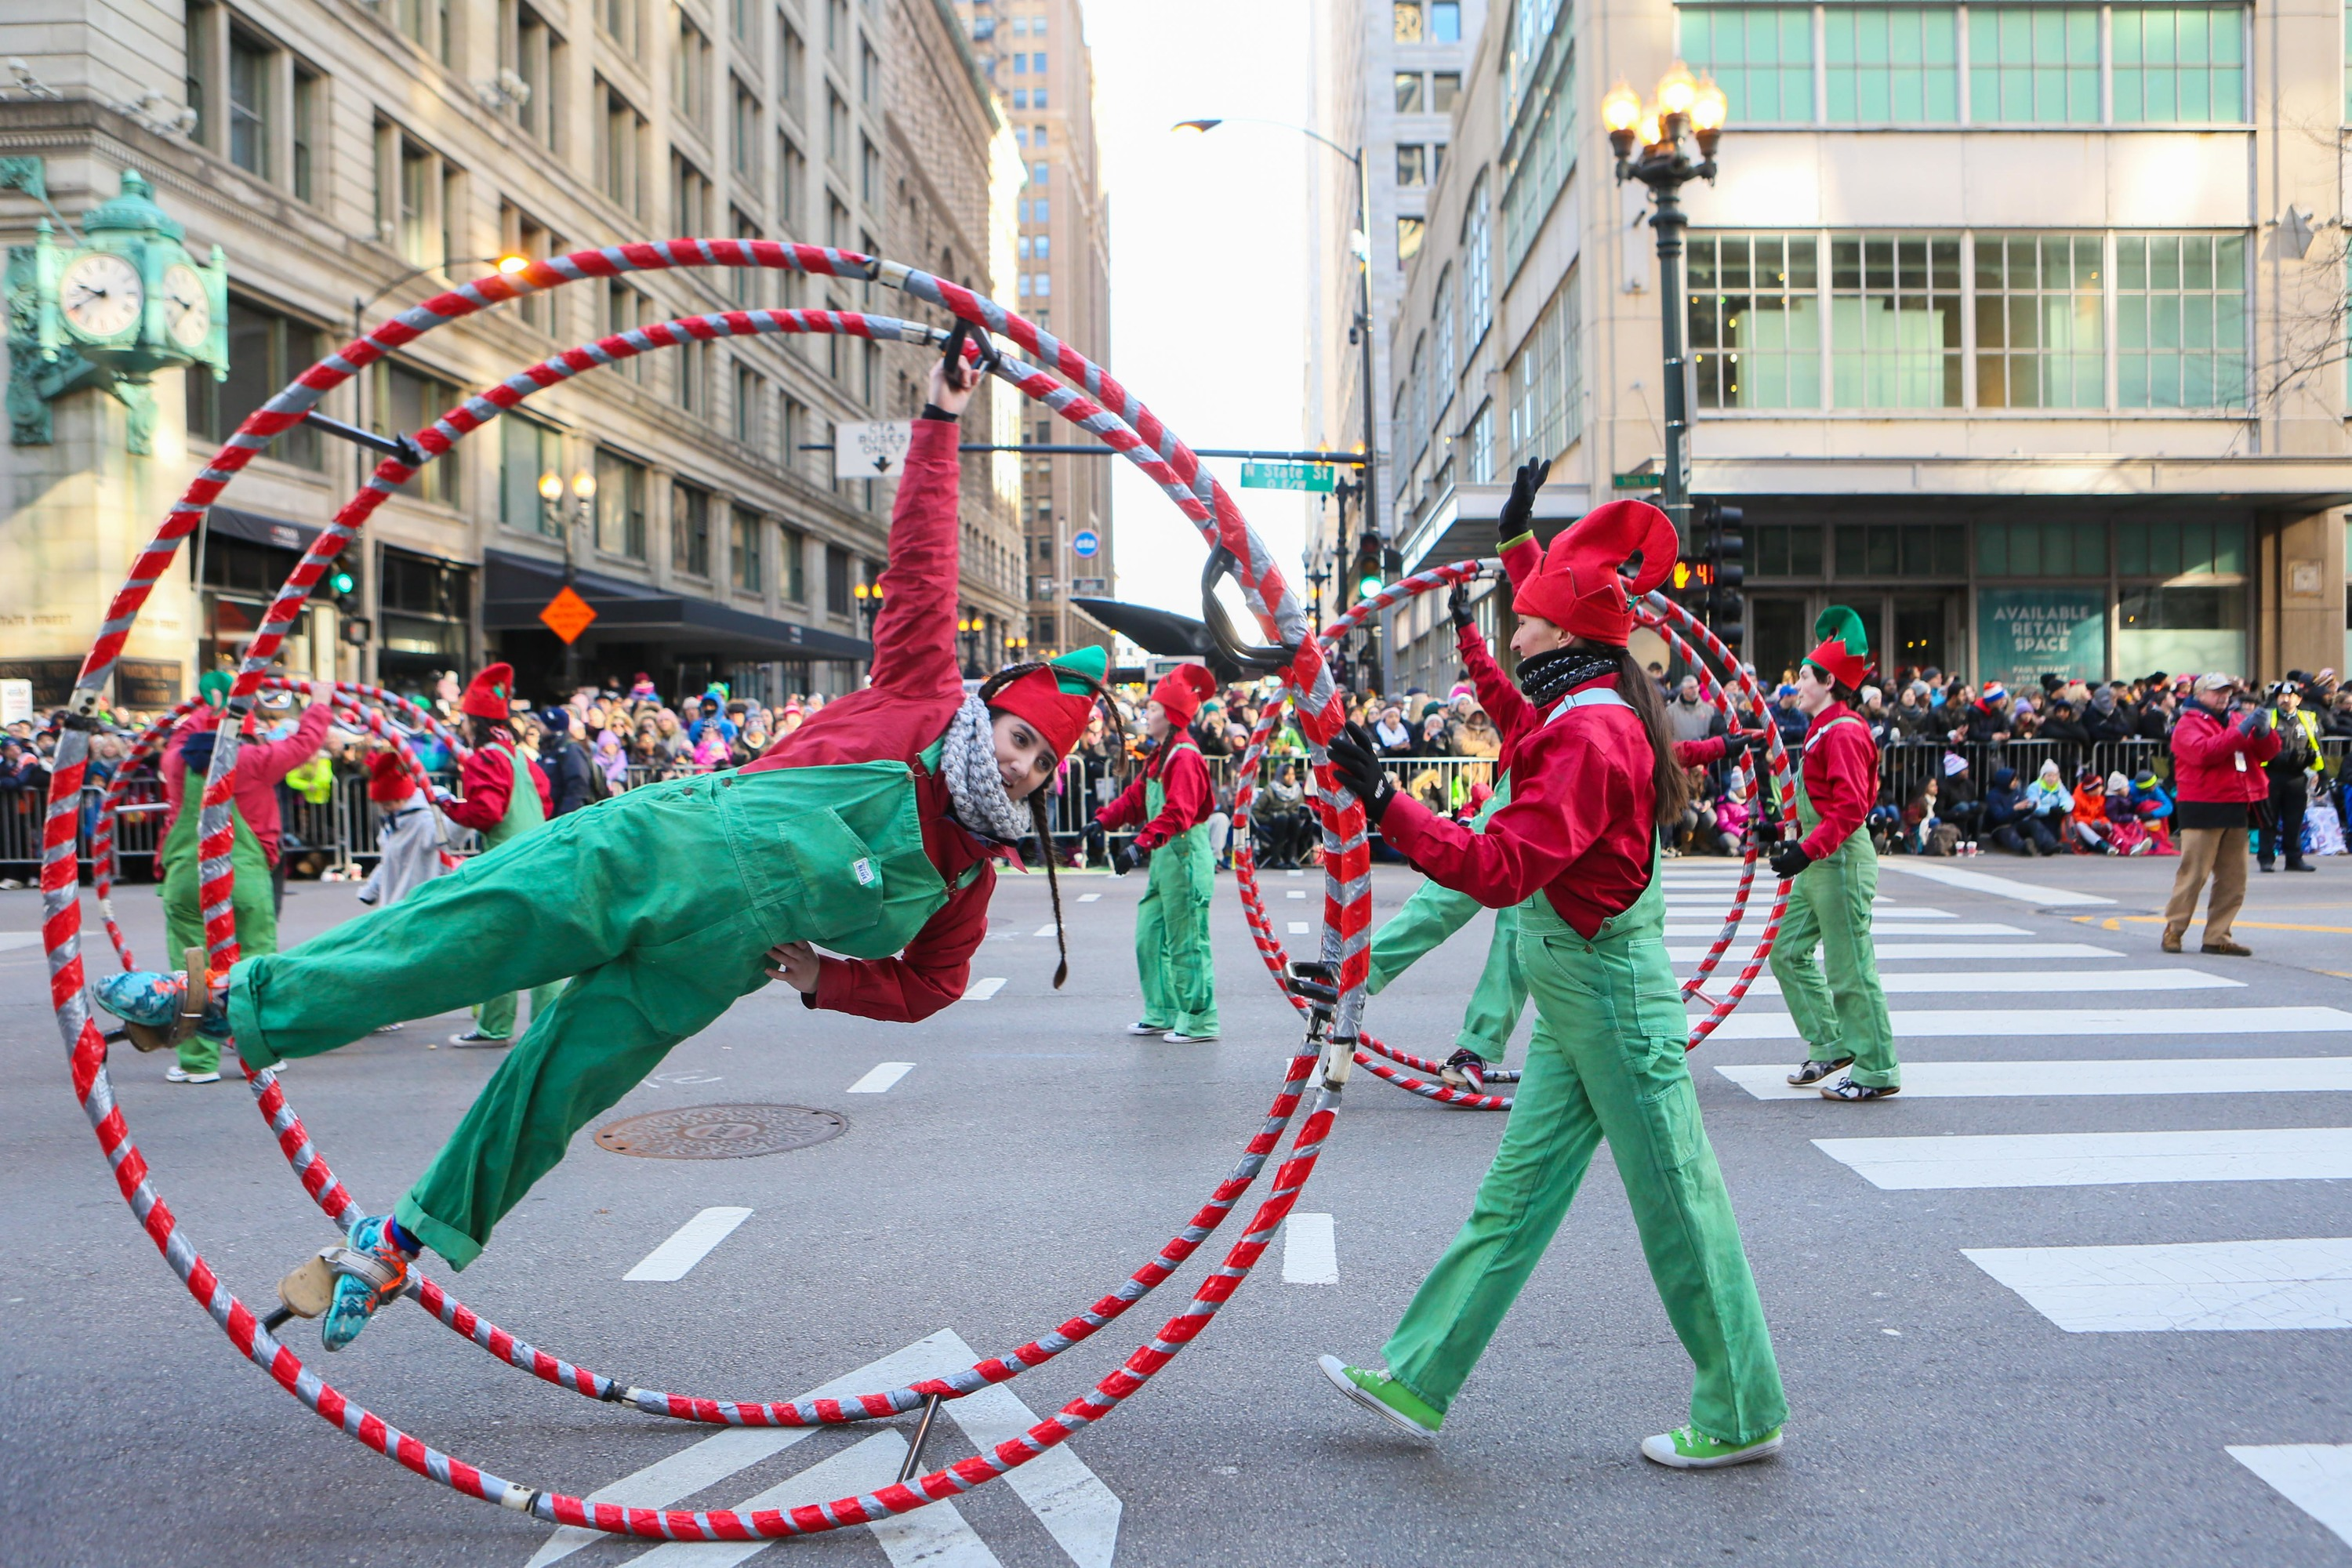 Photos from the Chicago Thanksgiving Parade